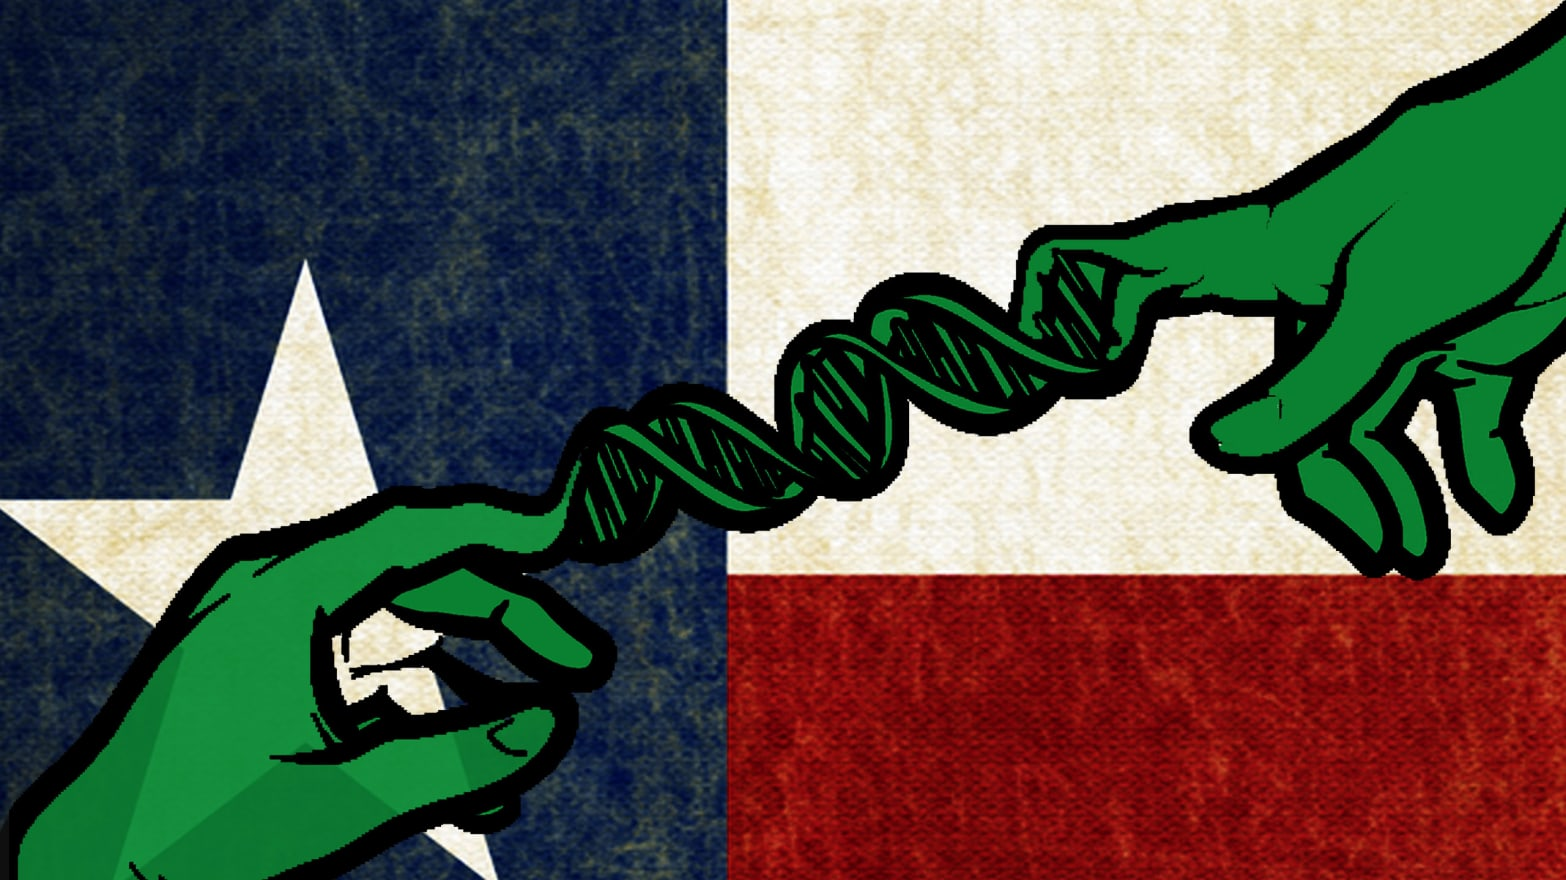 8c26a8153da Creationism in Texas Could Go Extinct on Election Day